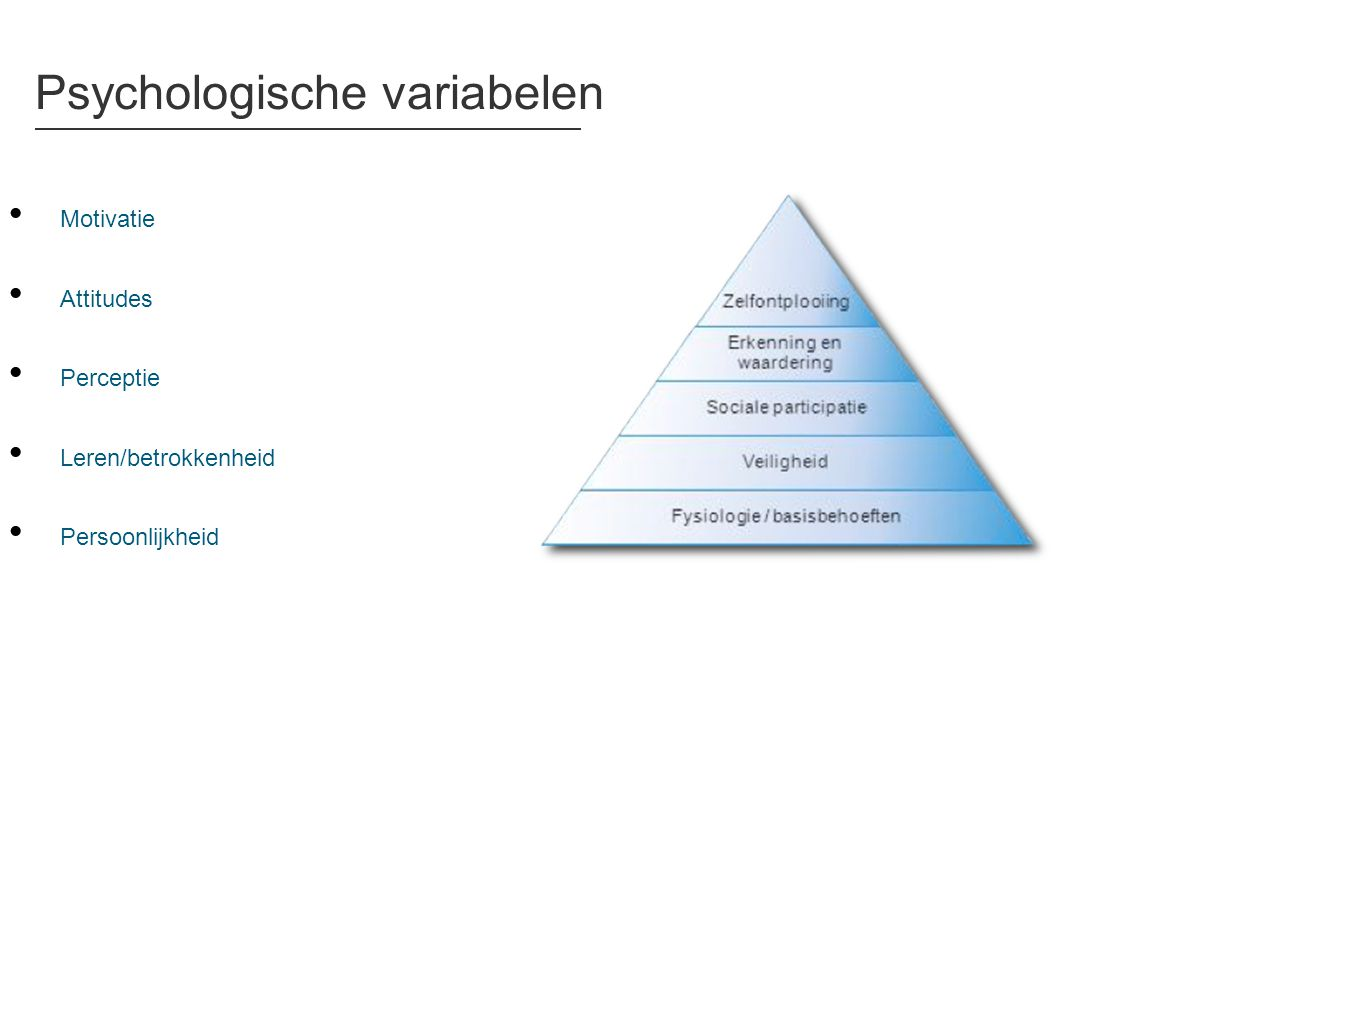 Psychografische variabelen • Lifestyle • AIO's (Activities, Interests, Opinions)